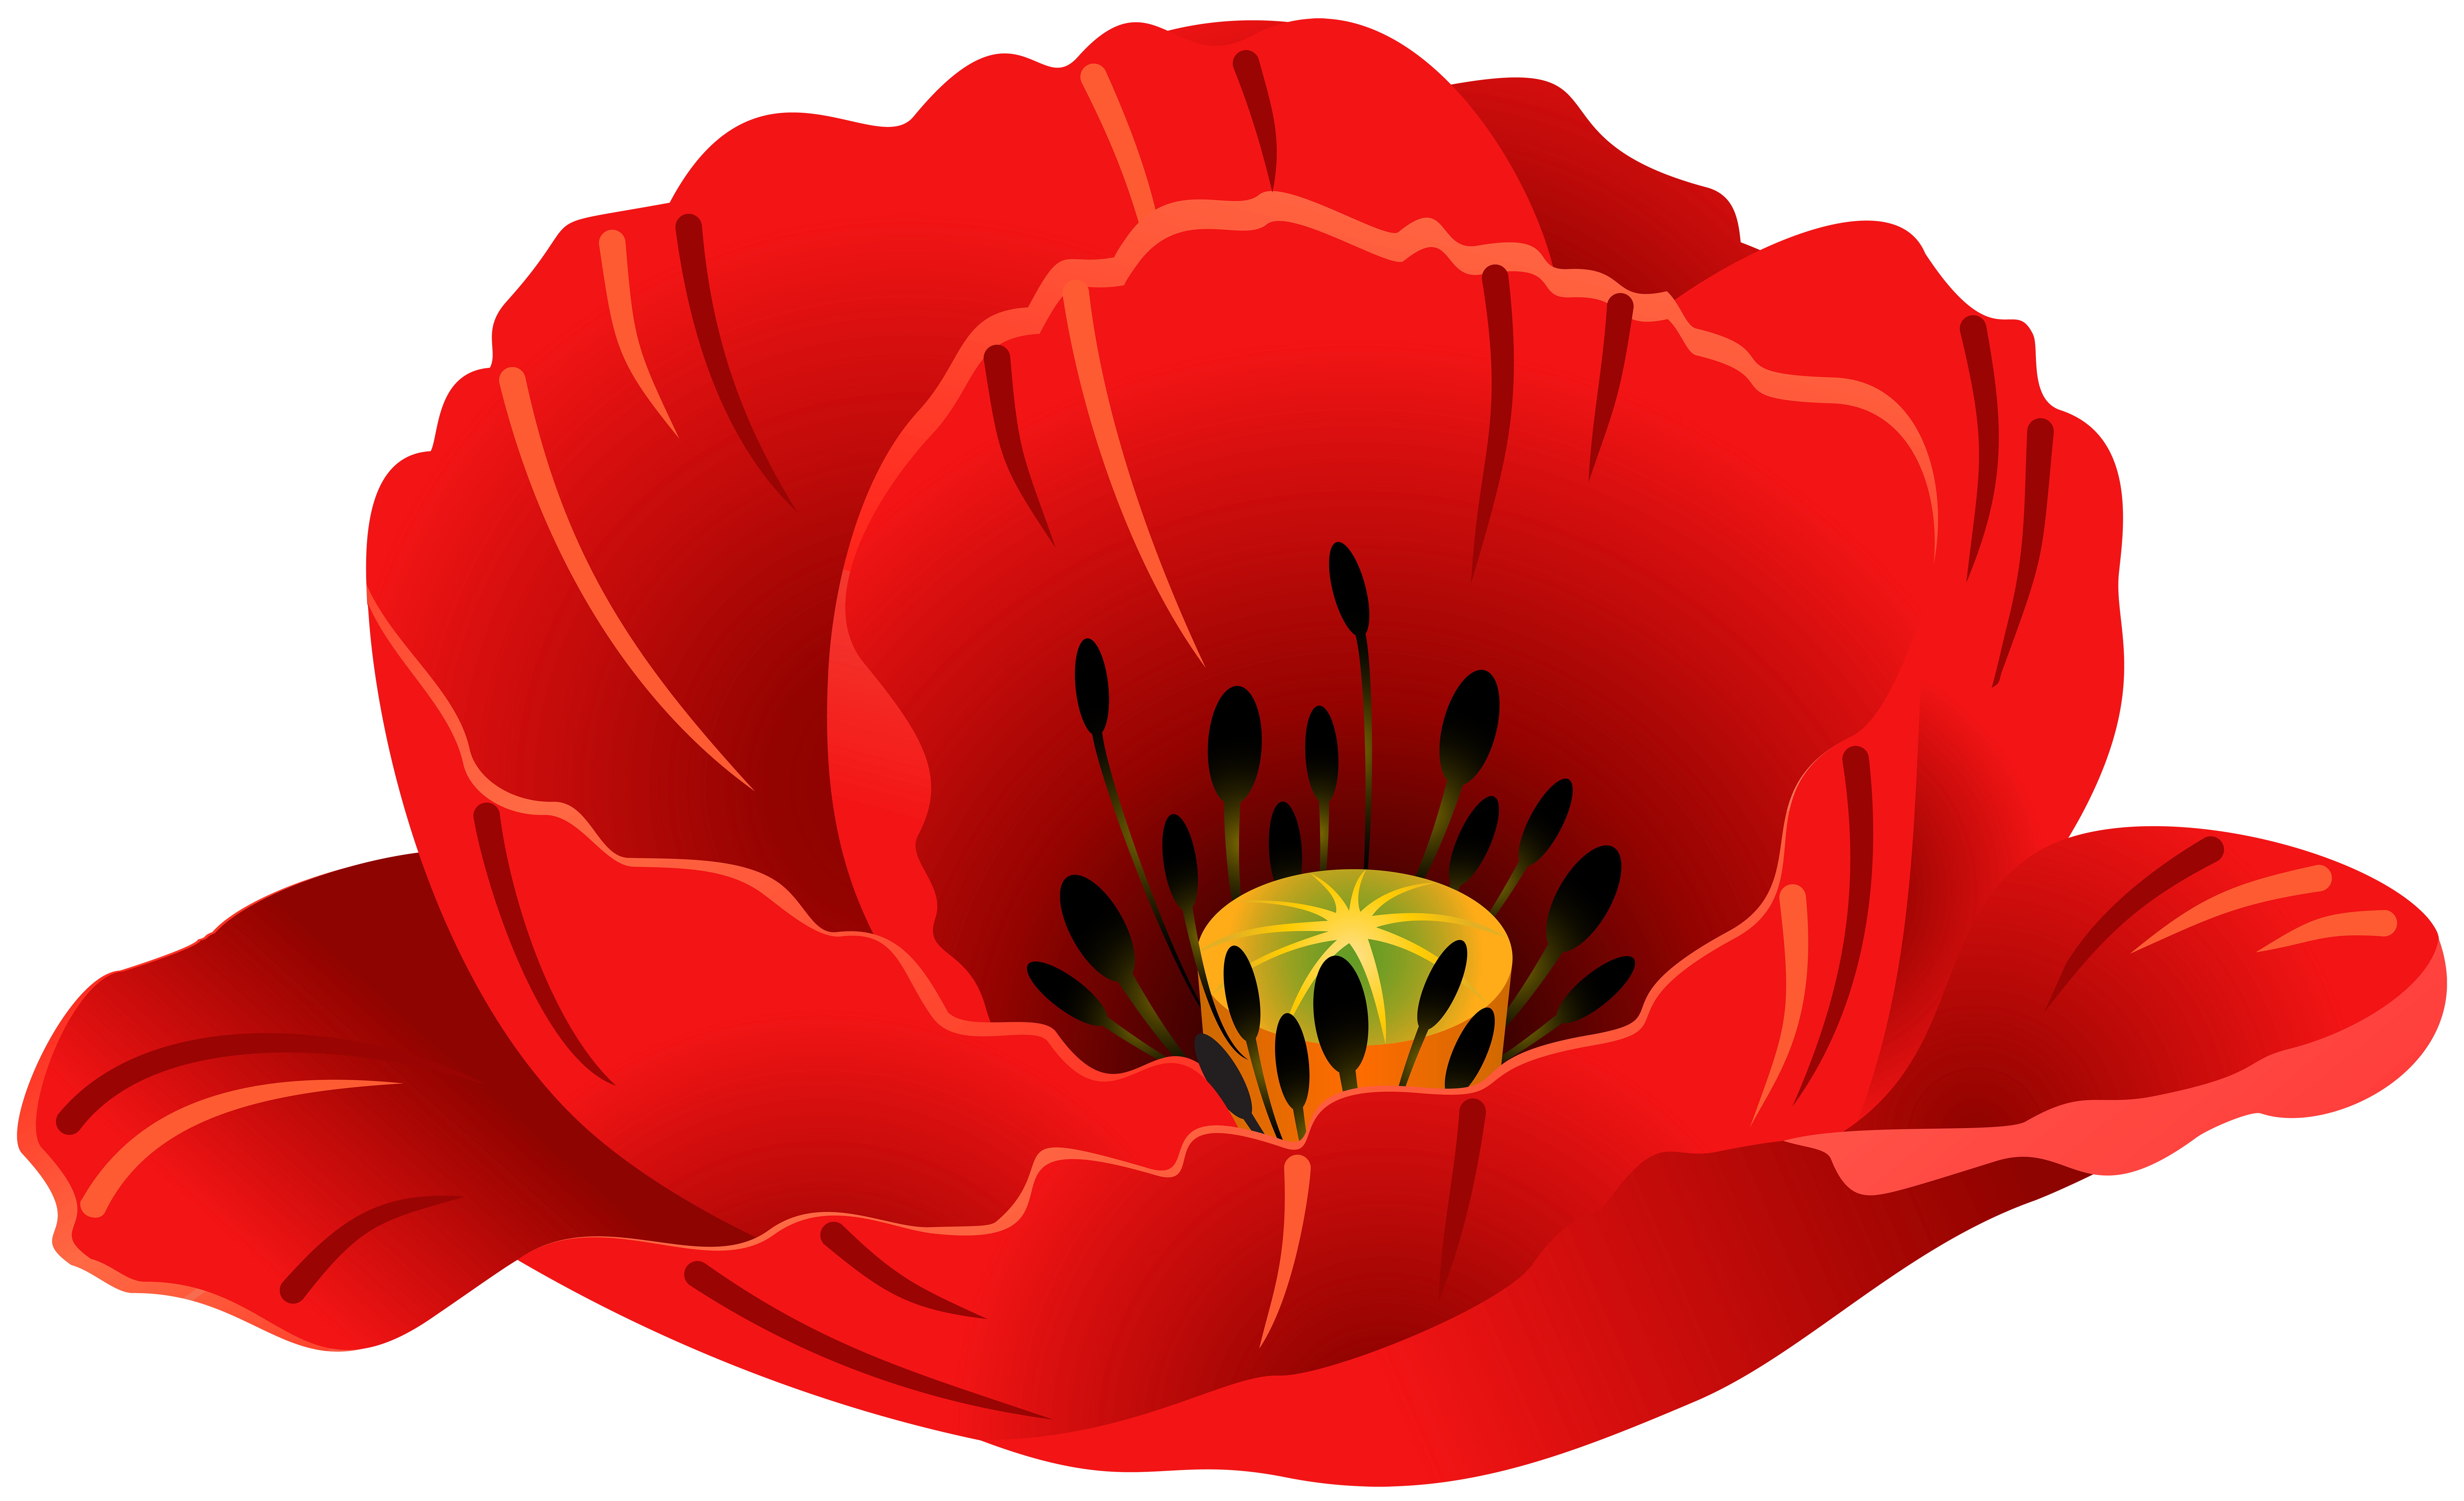 Free clipart of poppies. Poppy transparent png clip